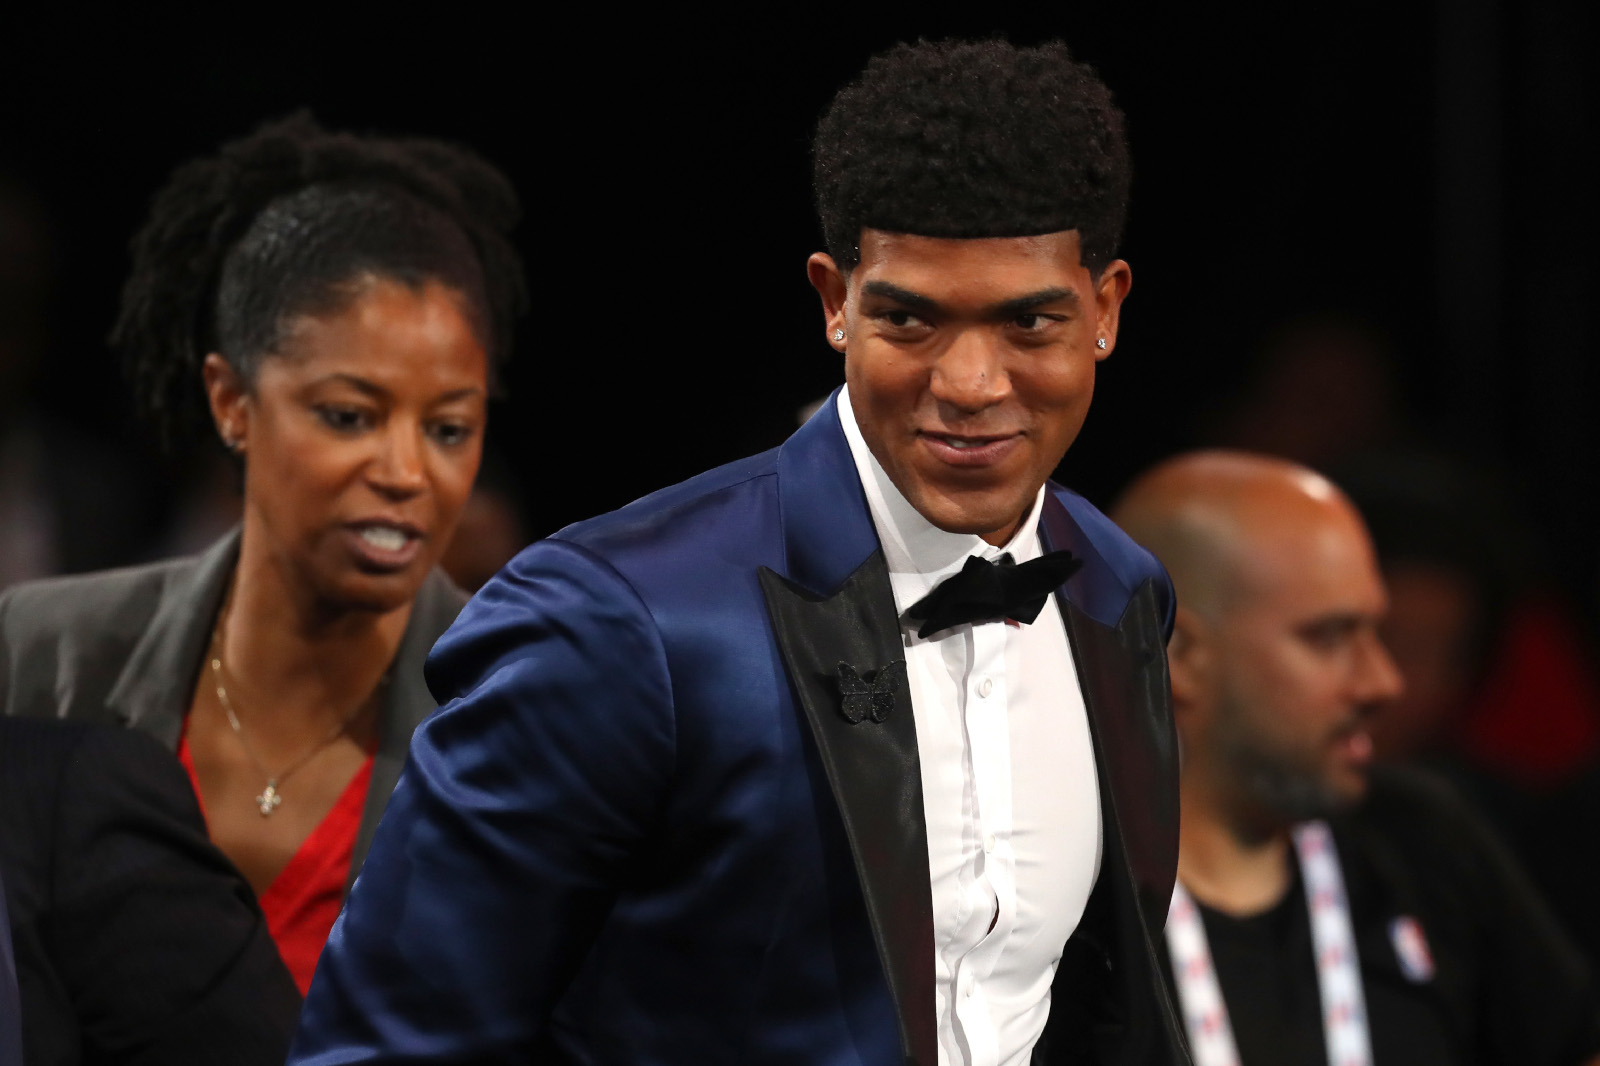 Chandler Hutchison reacts after being drafted 22nd overall by the Chicago Bulls during the 2018 NBA Draft at the Barclays Center on June 21, 2018 in the Brooklyn borough of New York City.